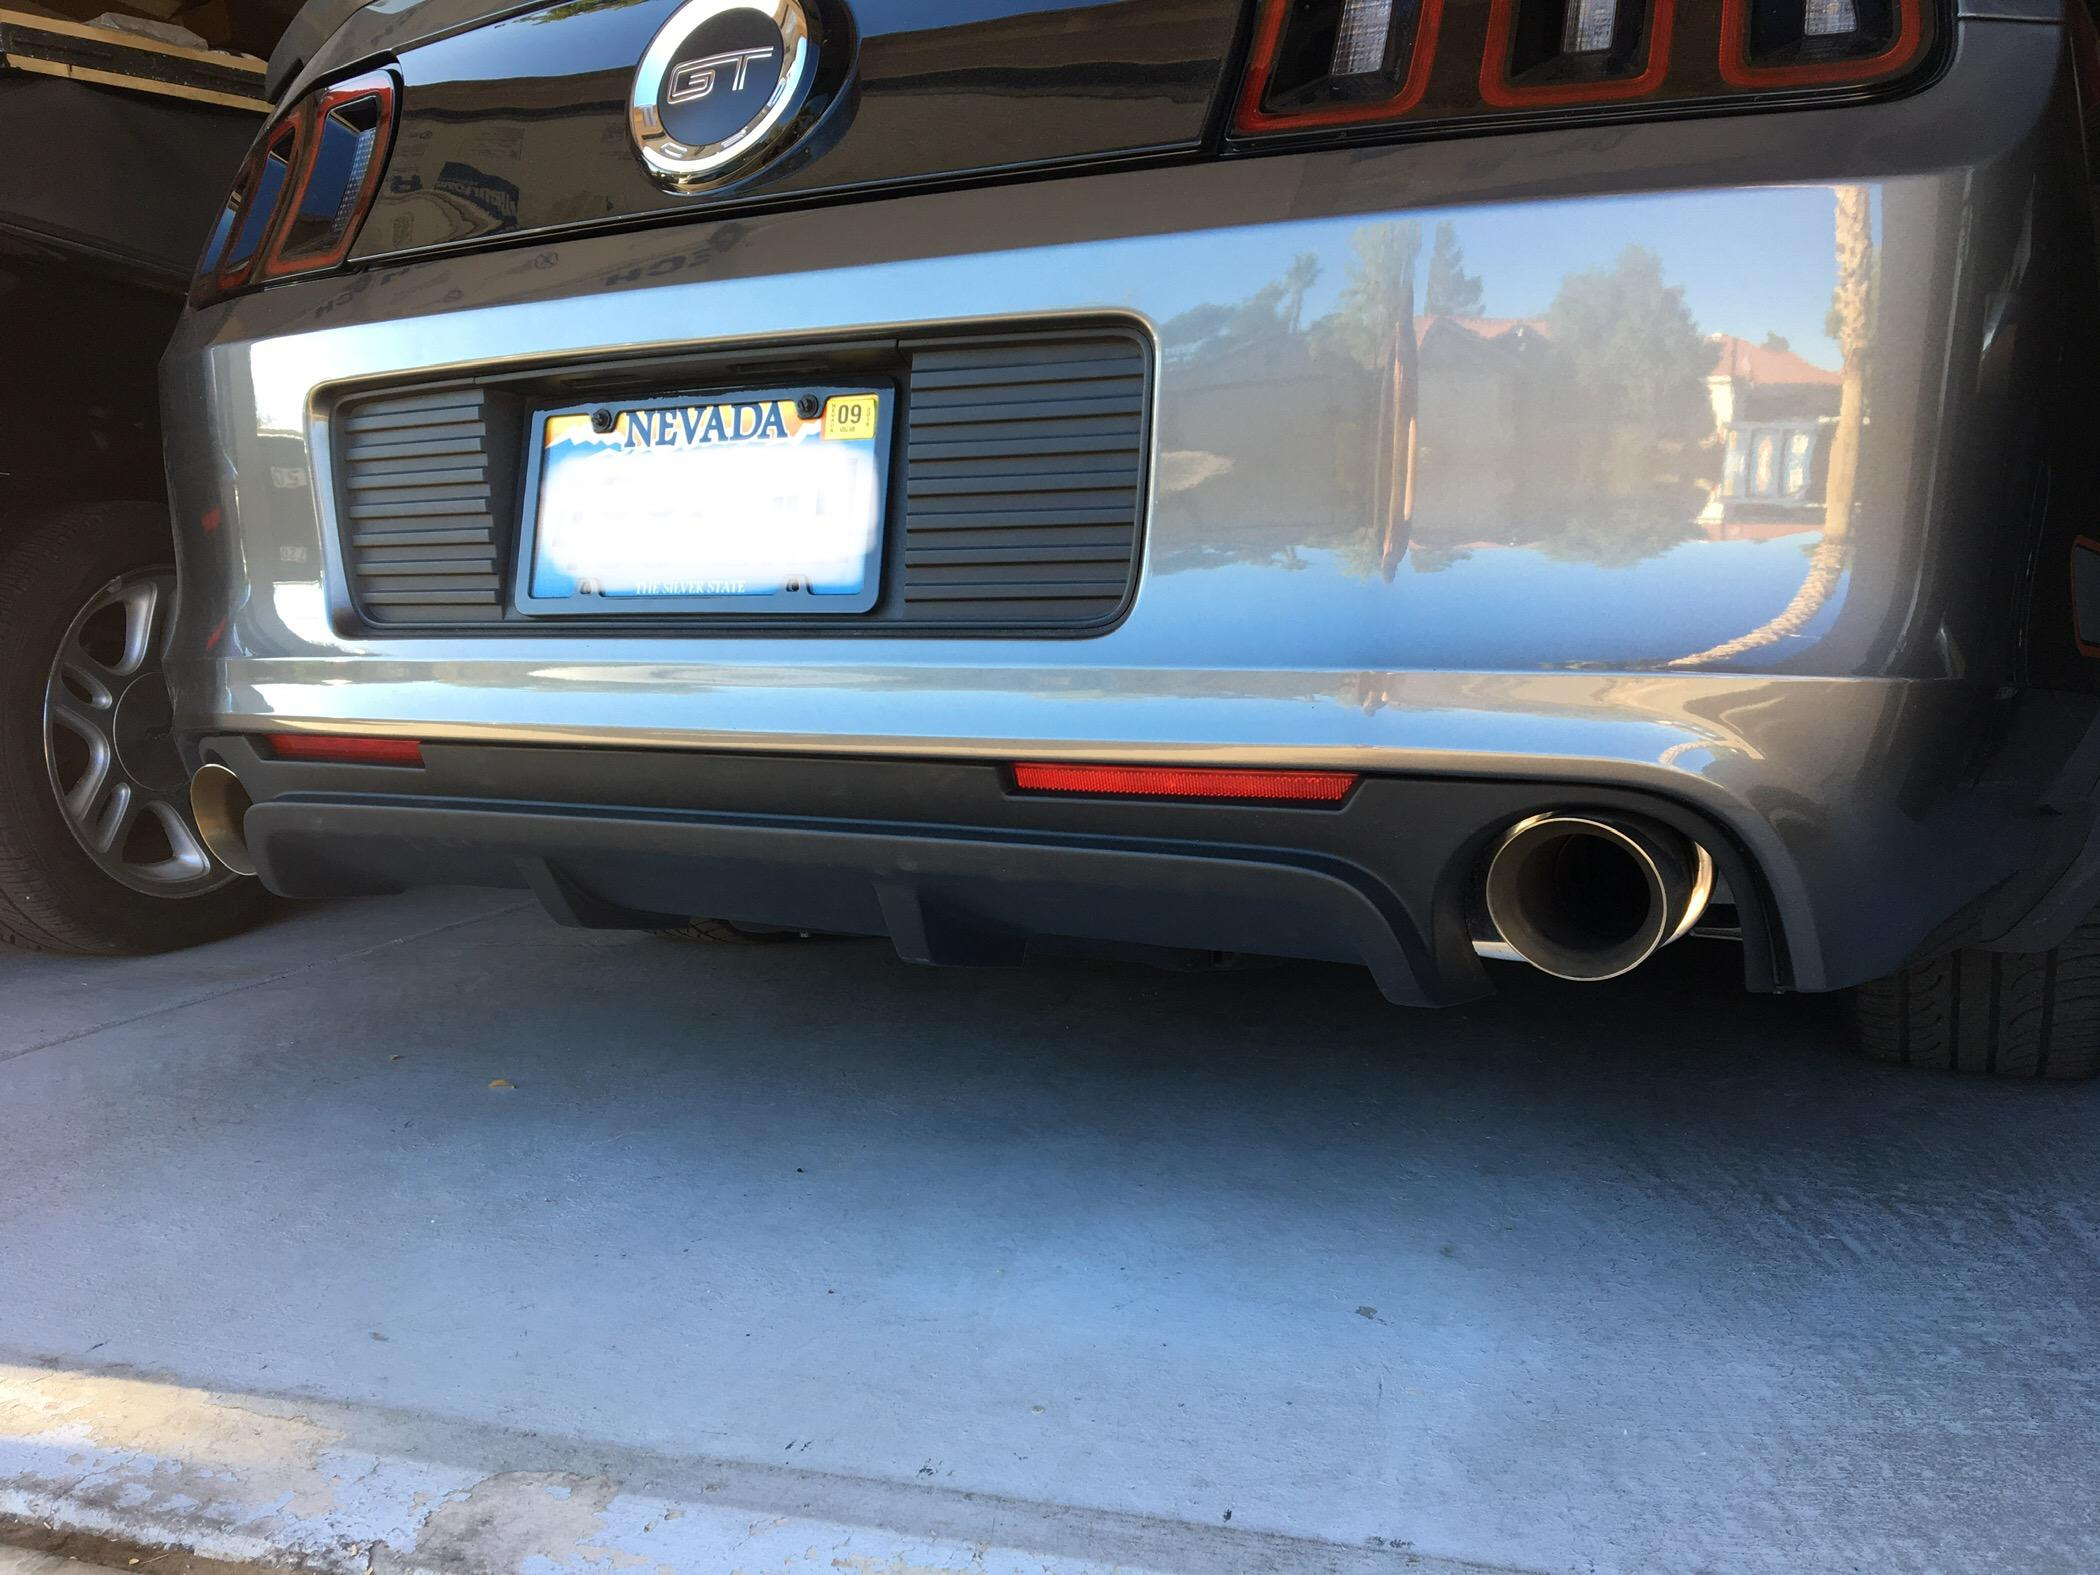 Mustang Boss 302 Rear Diffuser 13 14 3z17f828ba Lmr Ford Great Appearance And Pretty Easy To Install Looks Really Gave The Backend A More Aggressive